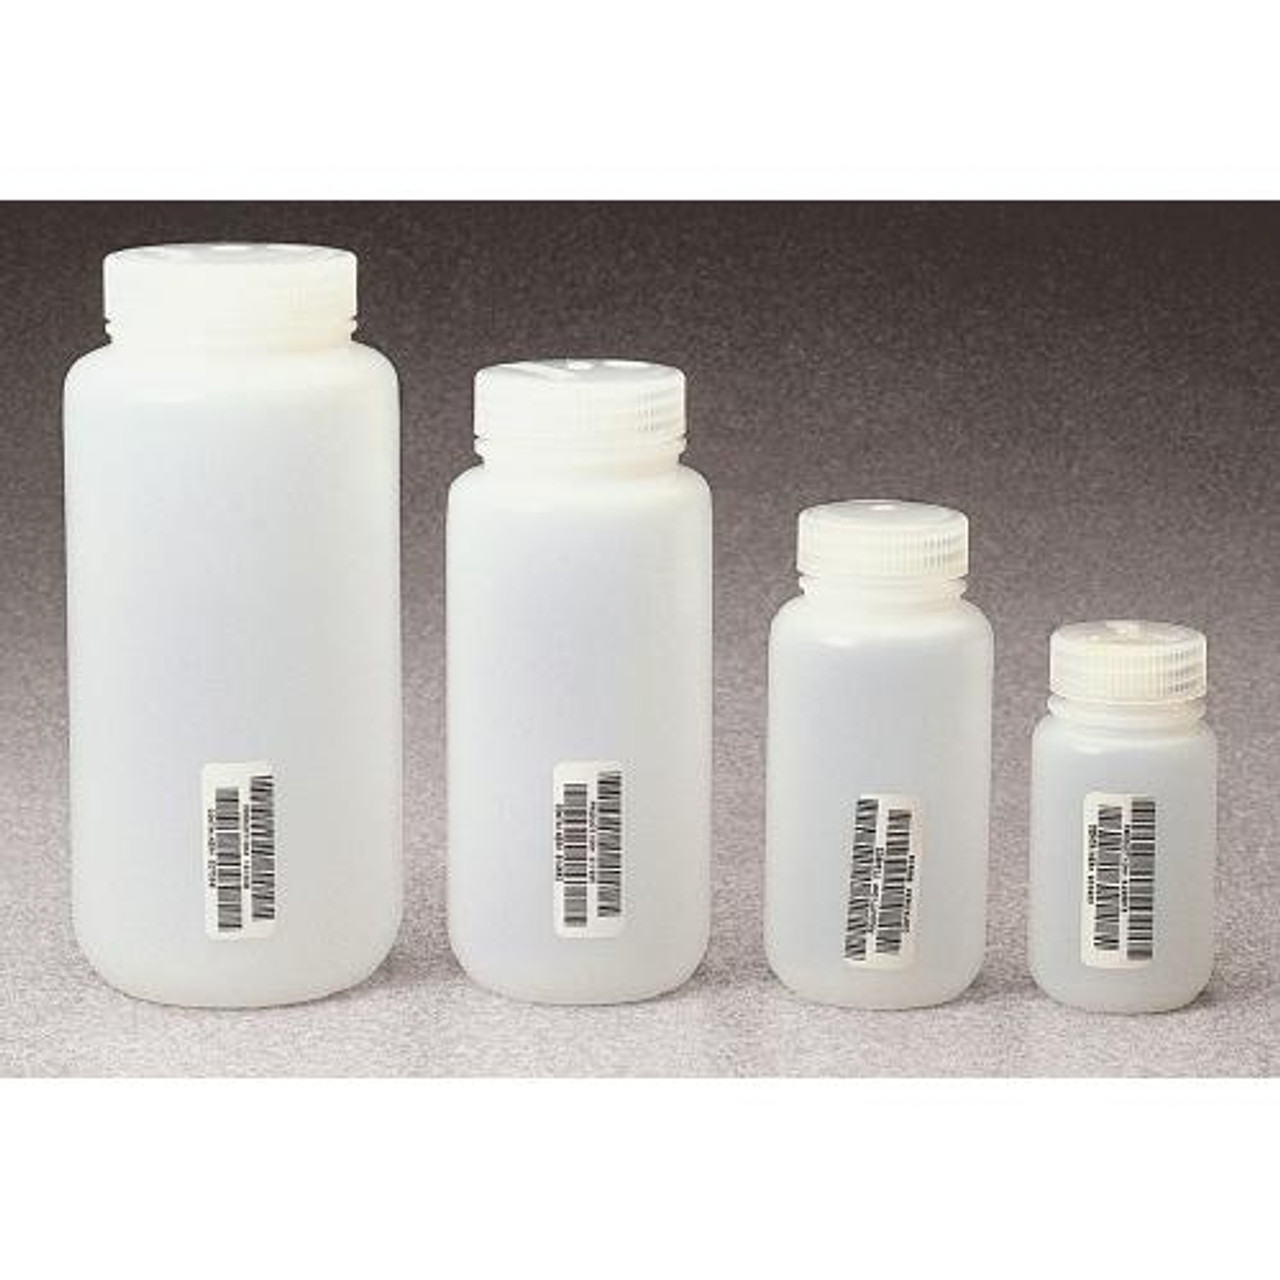 Thermo Scientific Nalgene N311-0250 Nalgene Wide-Mouth Natural HDPE Bottles  Bottle Wide Mouth Natl 250 ml (Case of 72)